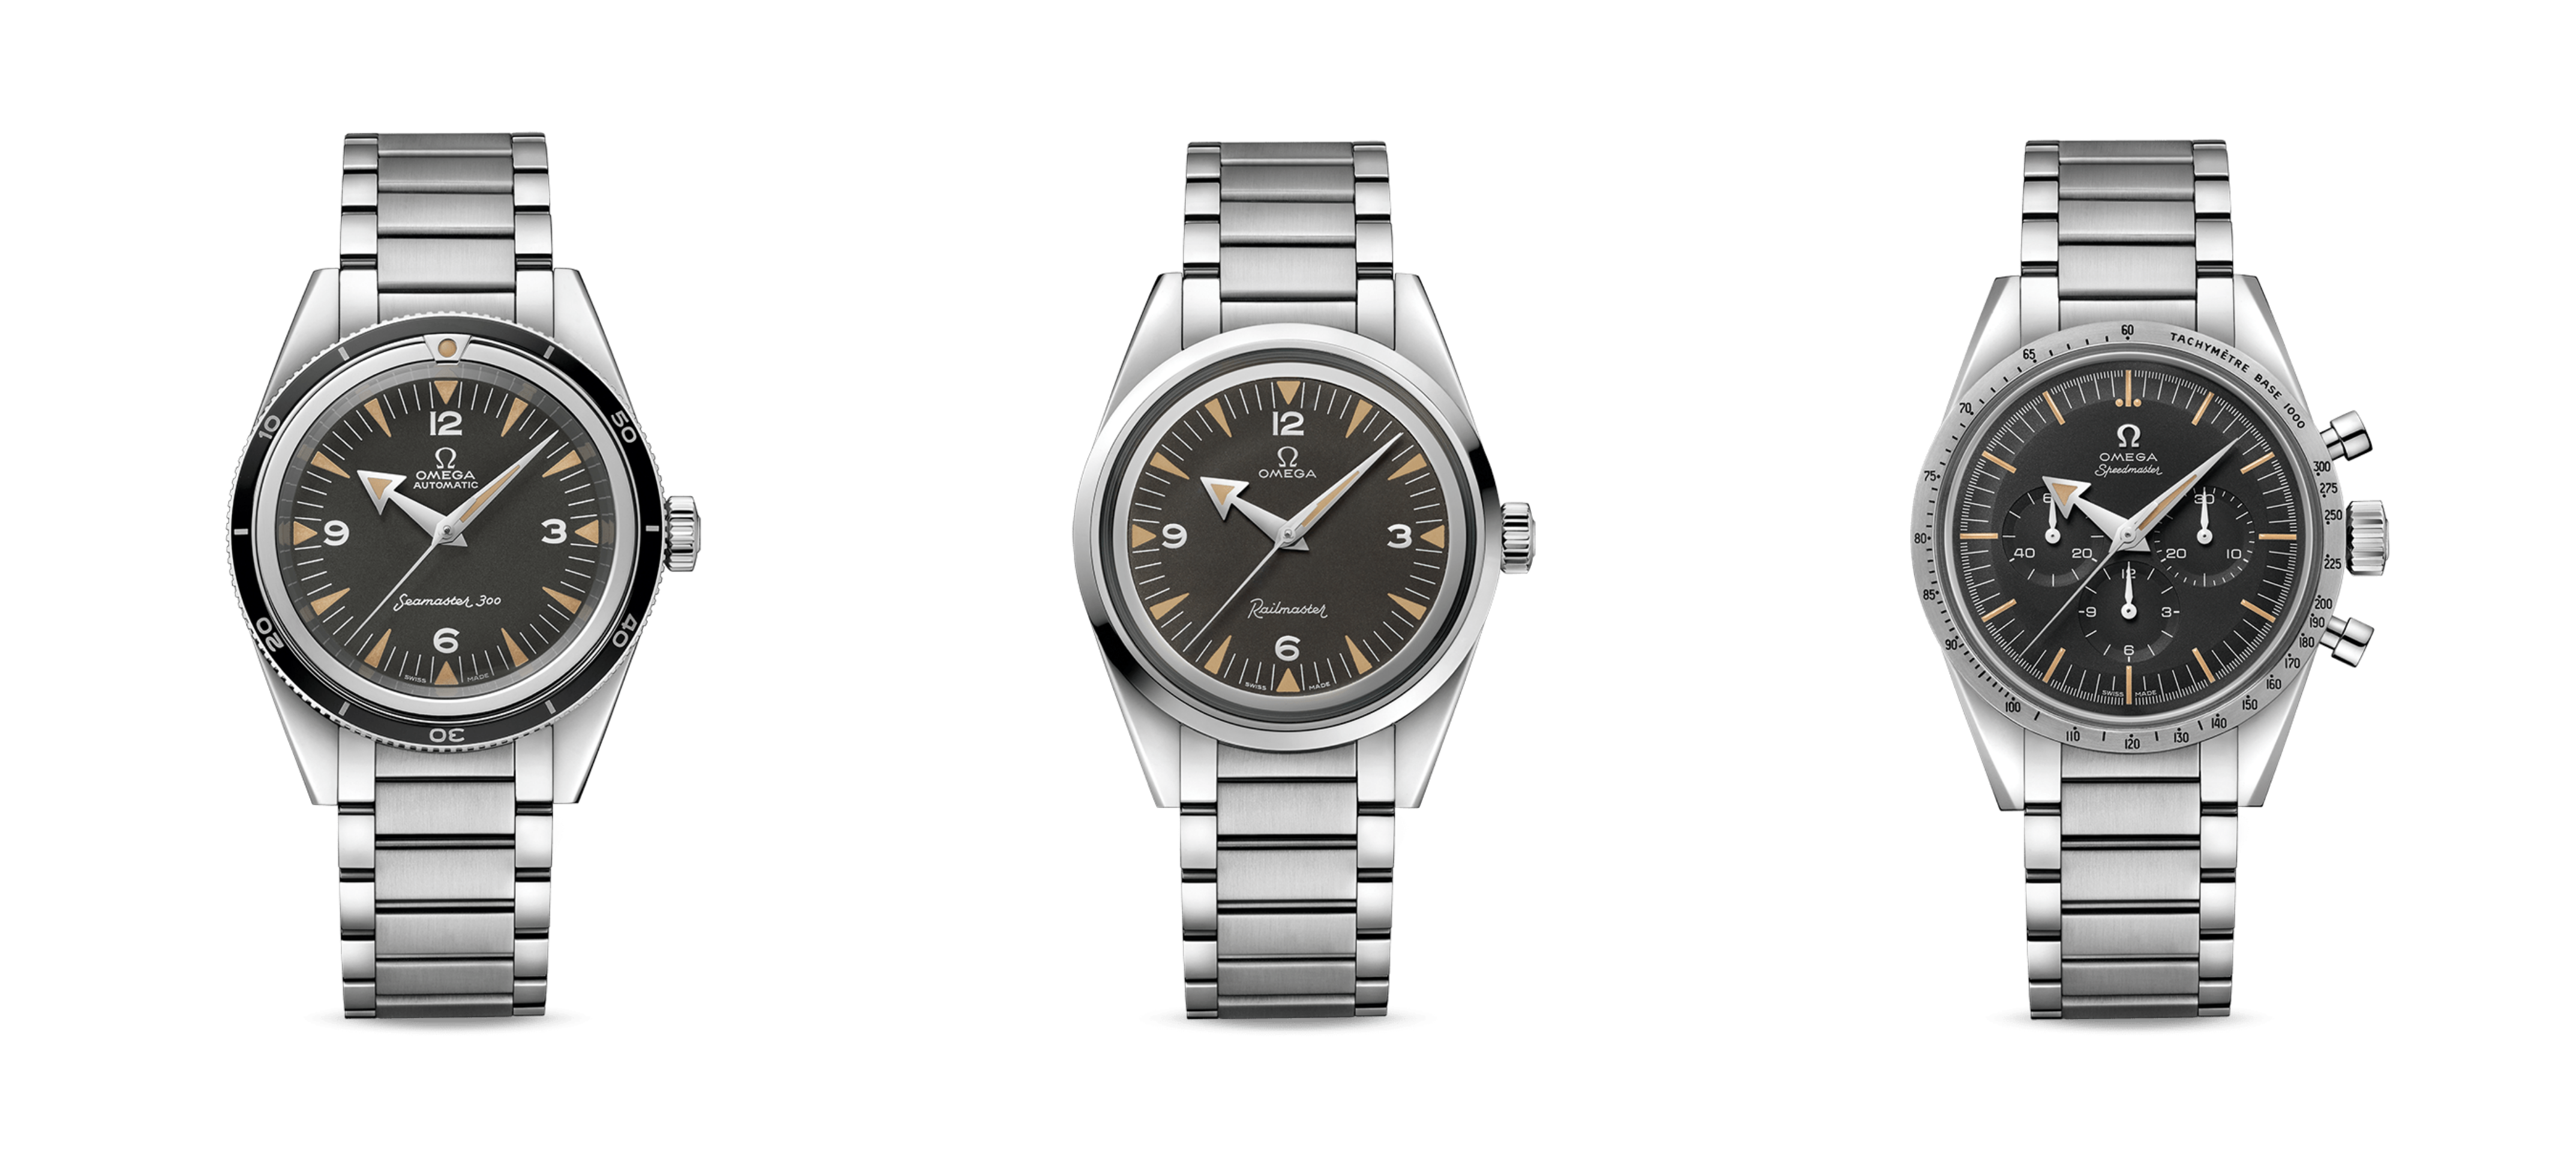 In 1957, OMEGA released three professional timepieces that would all go on to become absolute classics: The Seamaster 300, the Railmaster and the Speedmaster.